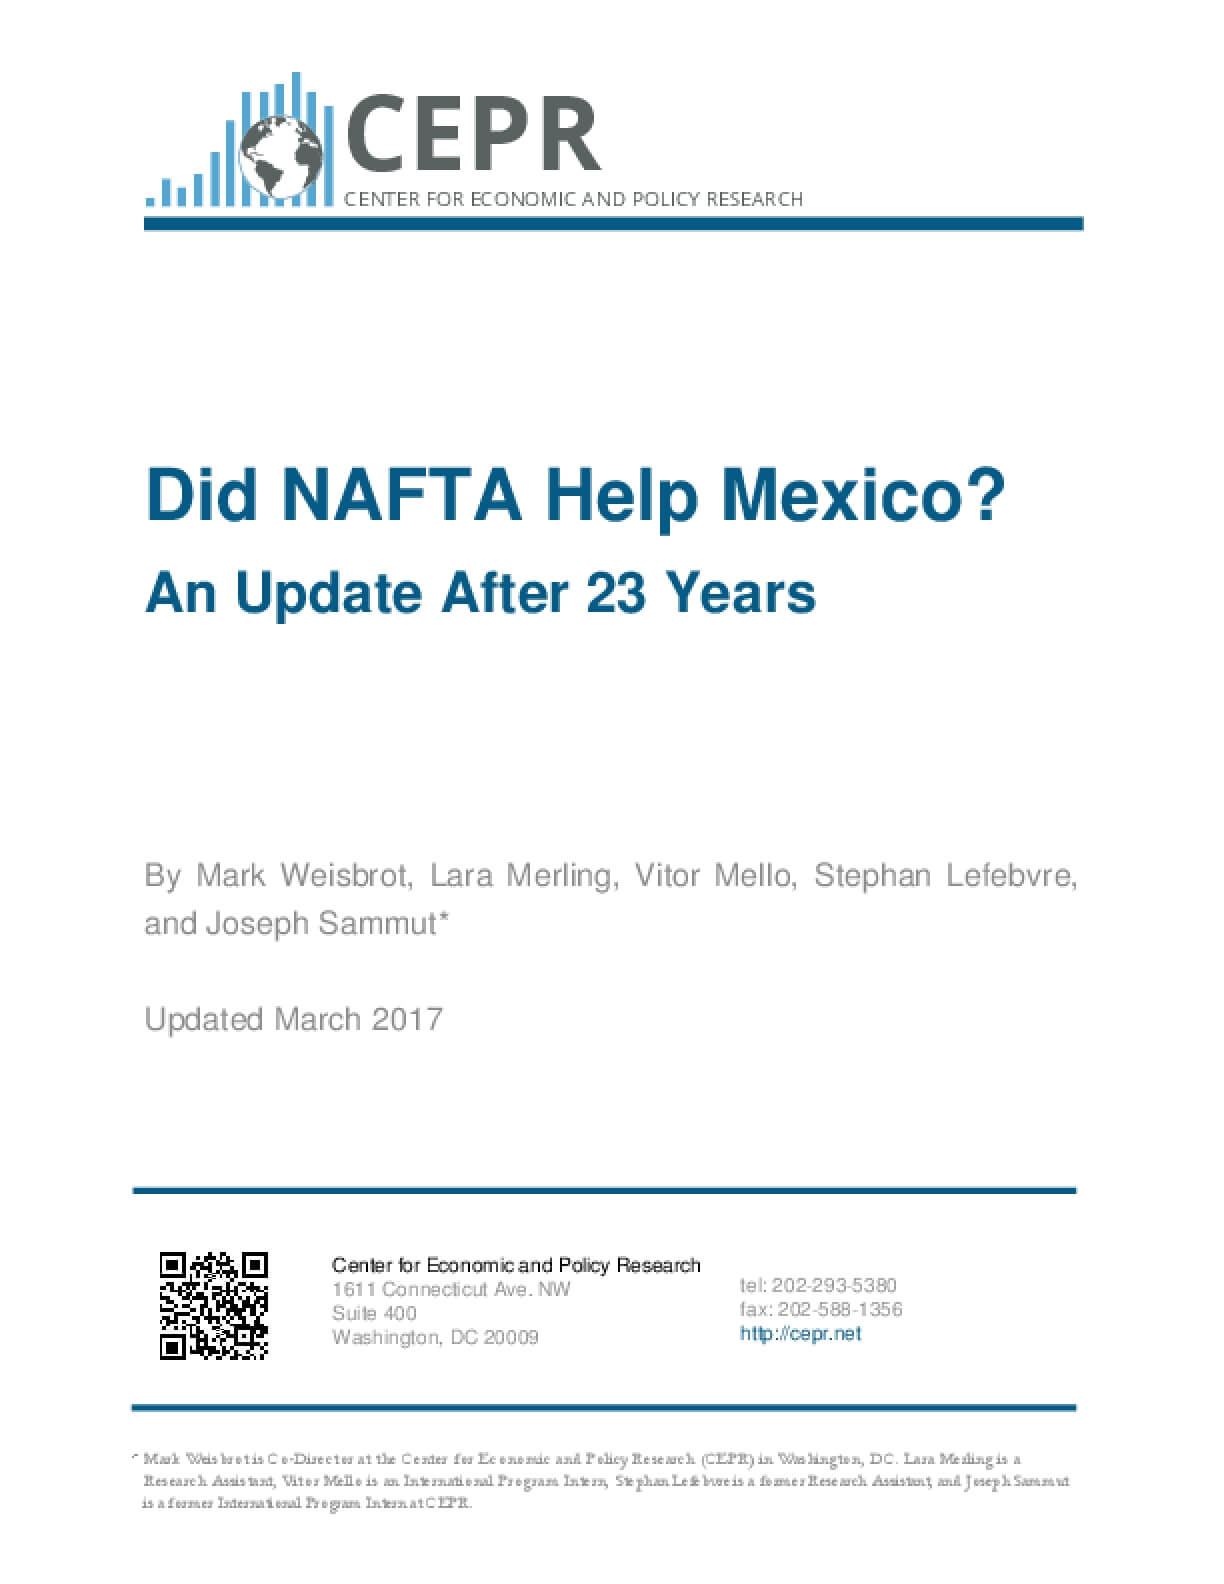 Did NAFTA Help Mexico? An Update After 23 Years